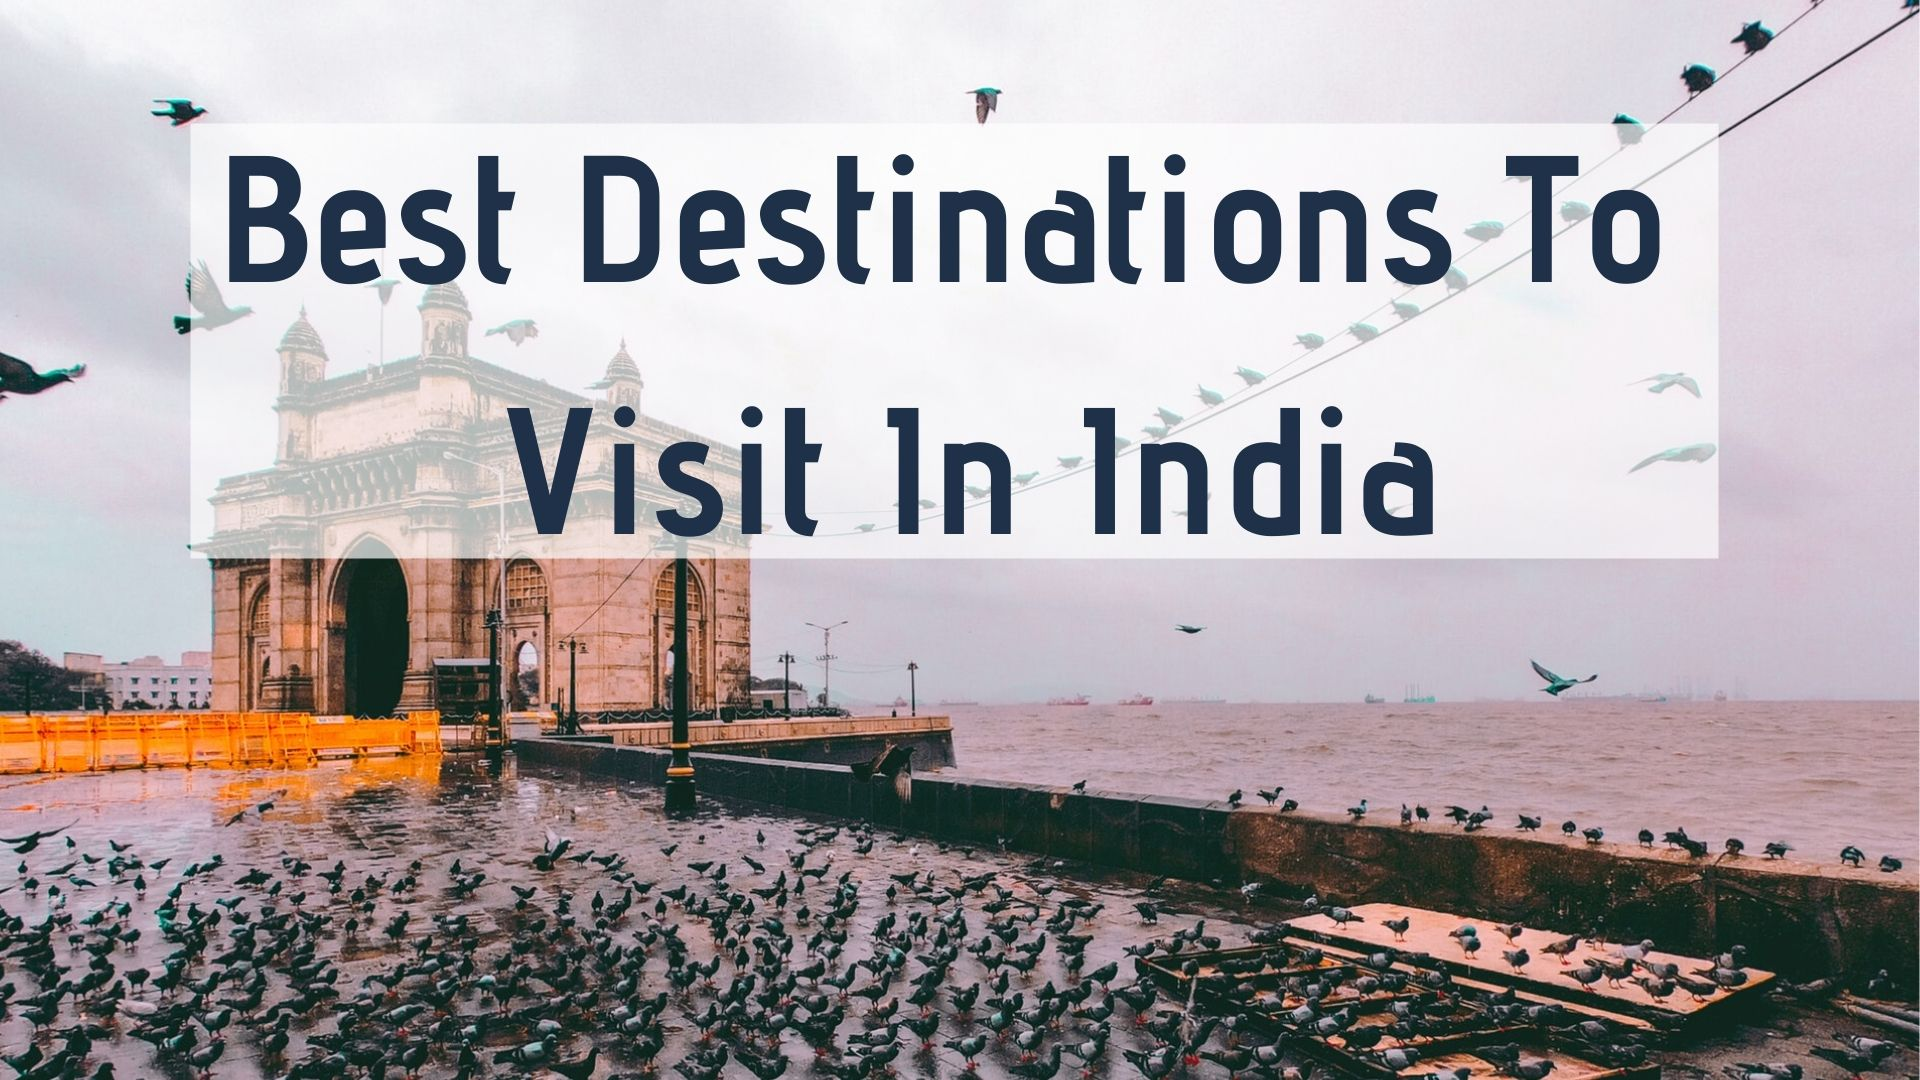 Best Destinations to Visit In India